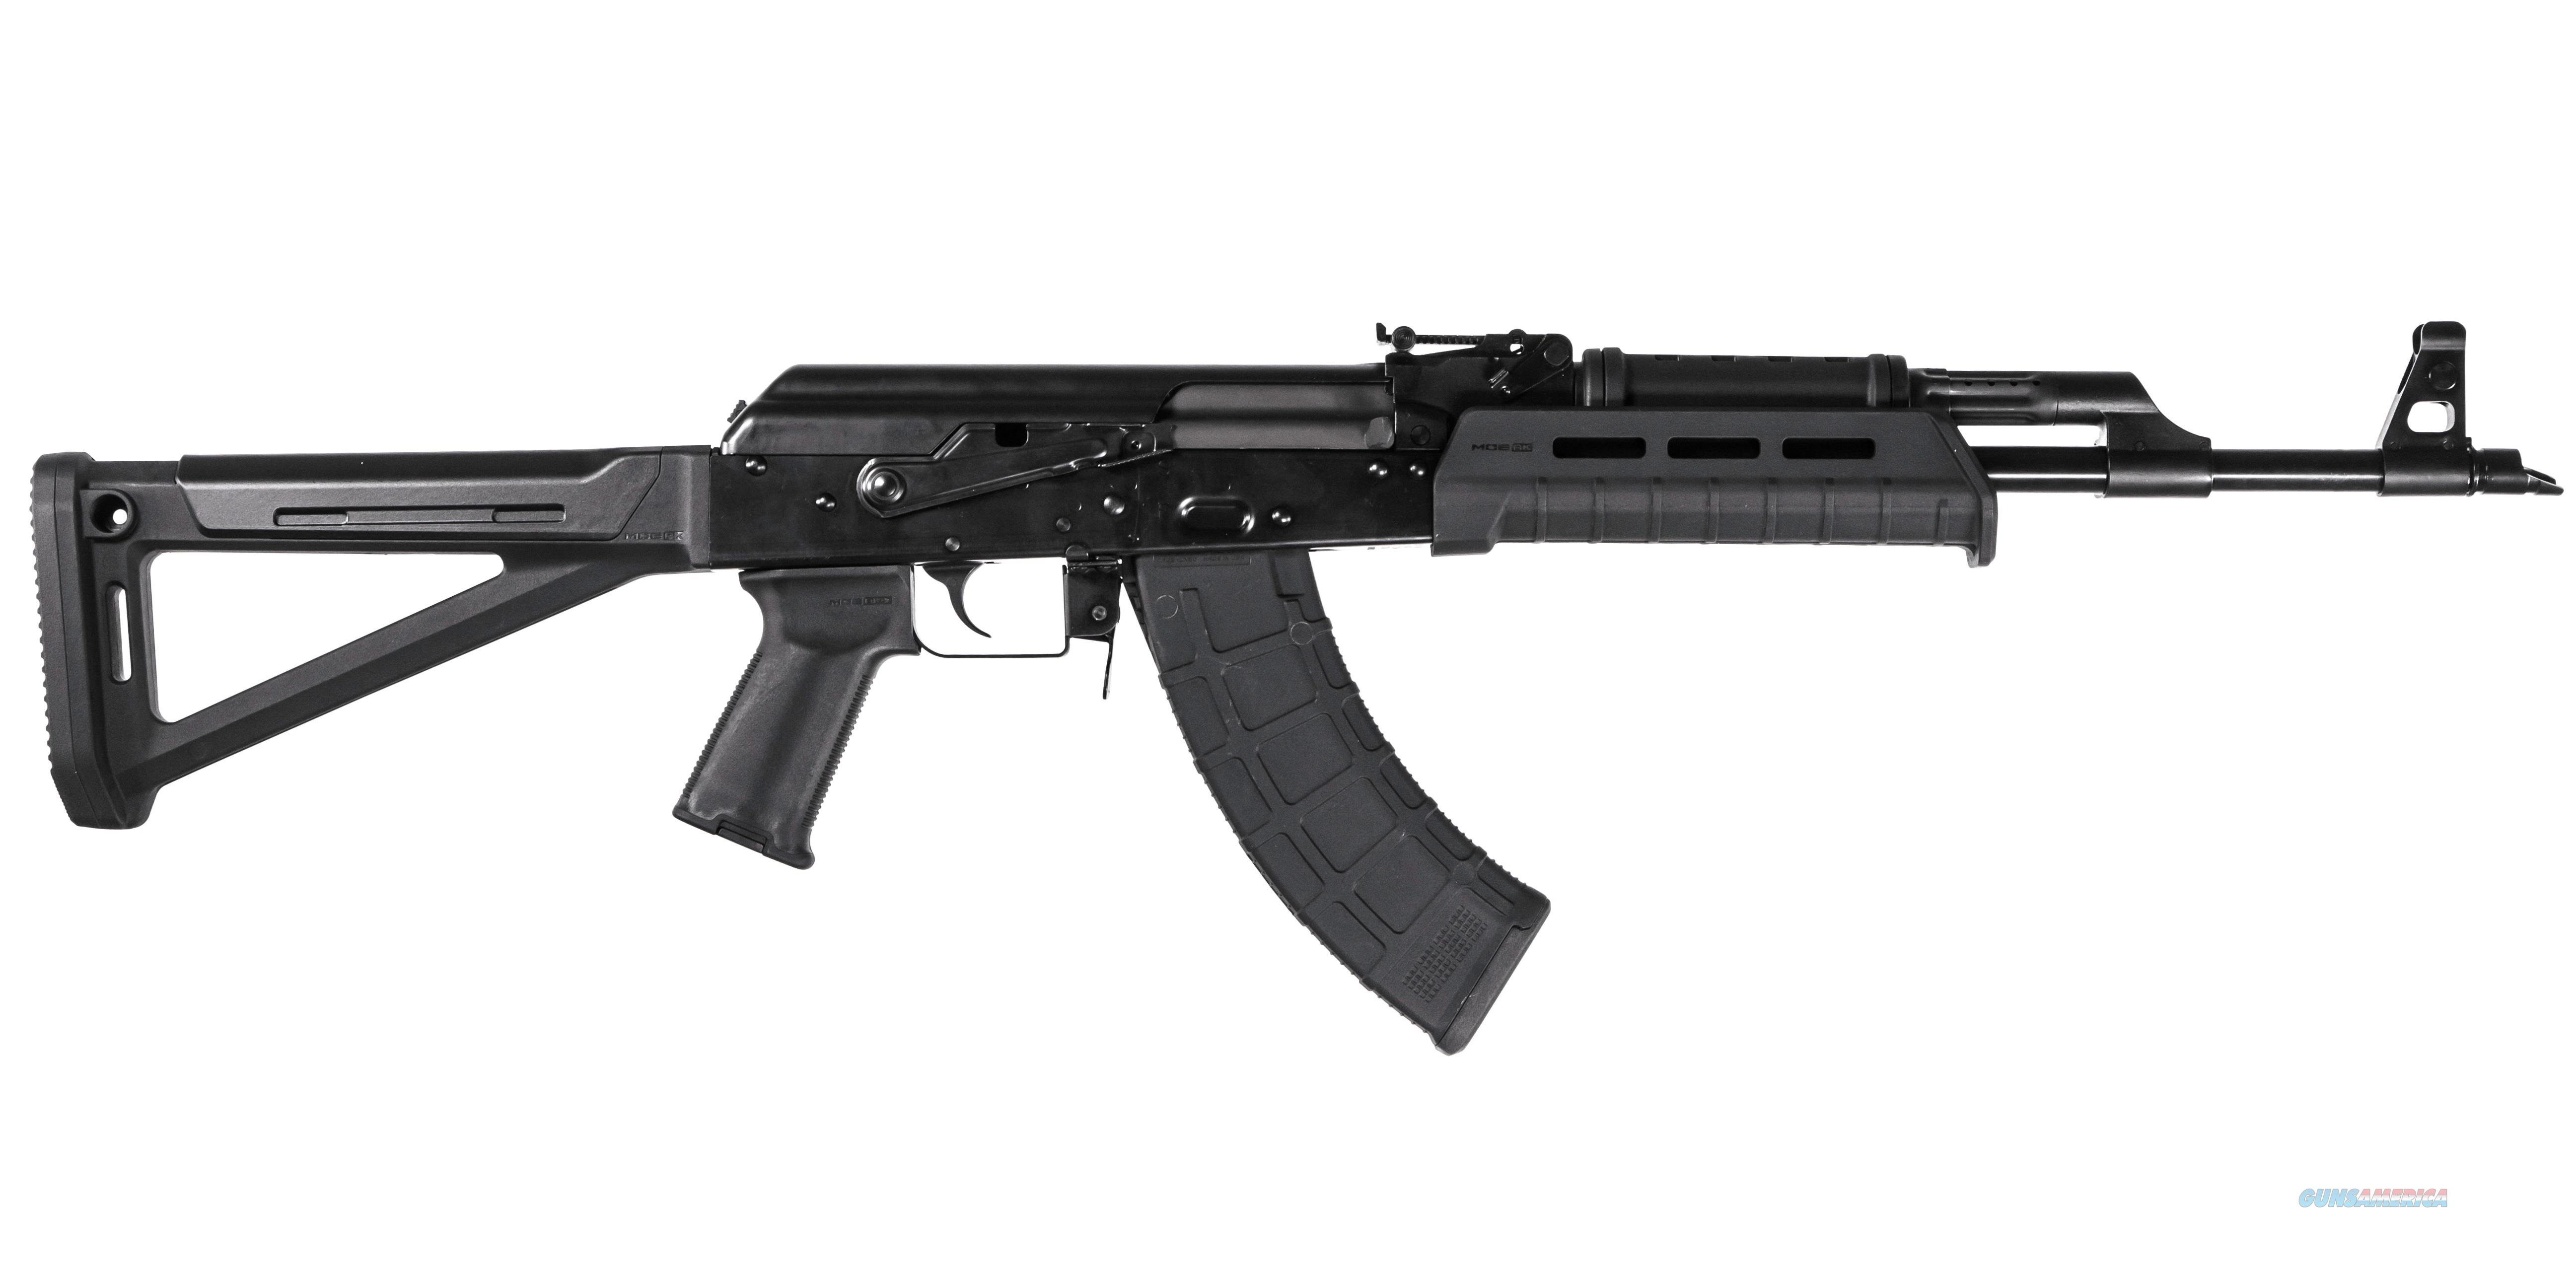 "Century Red Army C39v2 Rifle 7.62x39mm Black 16.5"" RI2399-N   Guns > Rifles > Century International Arms - Rifles > Rifles"